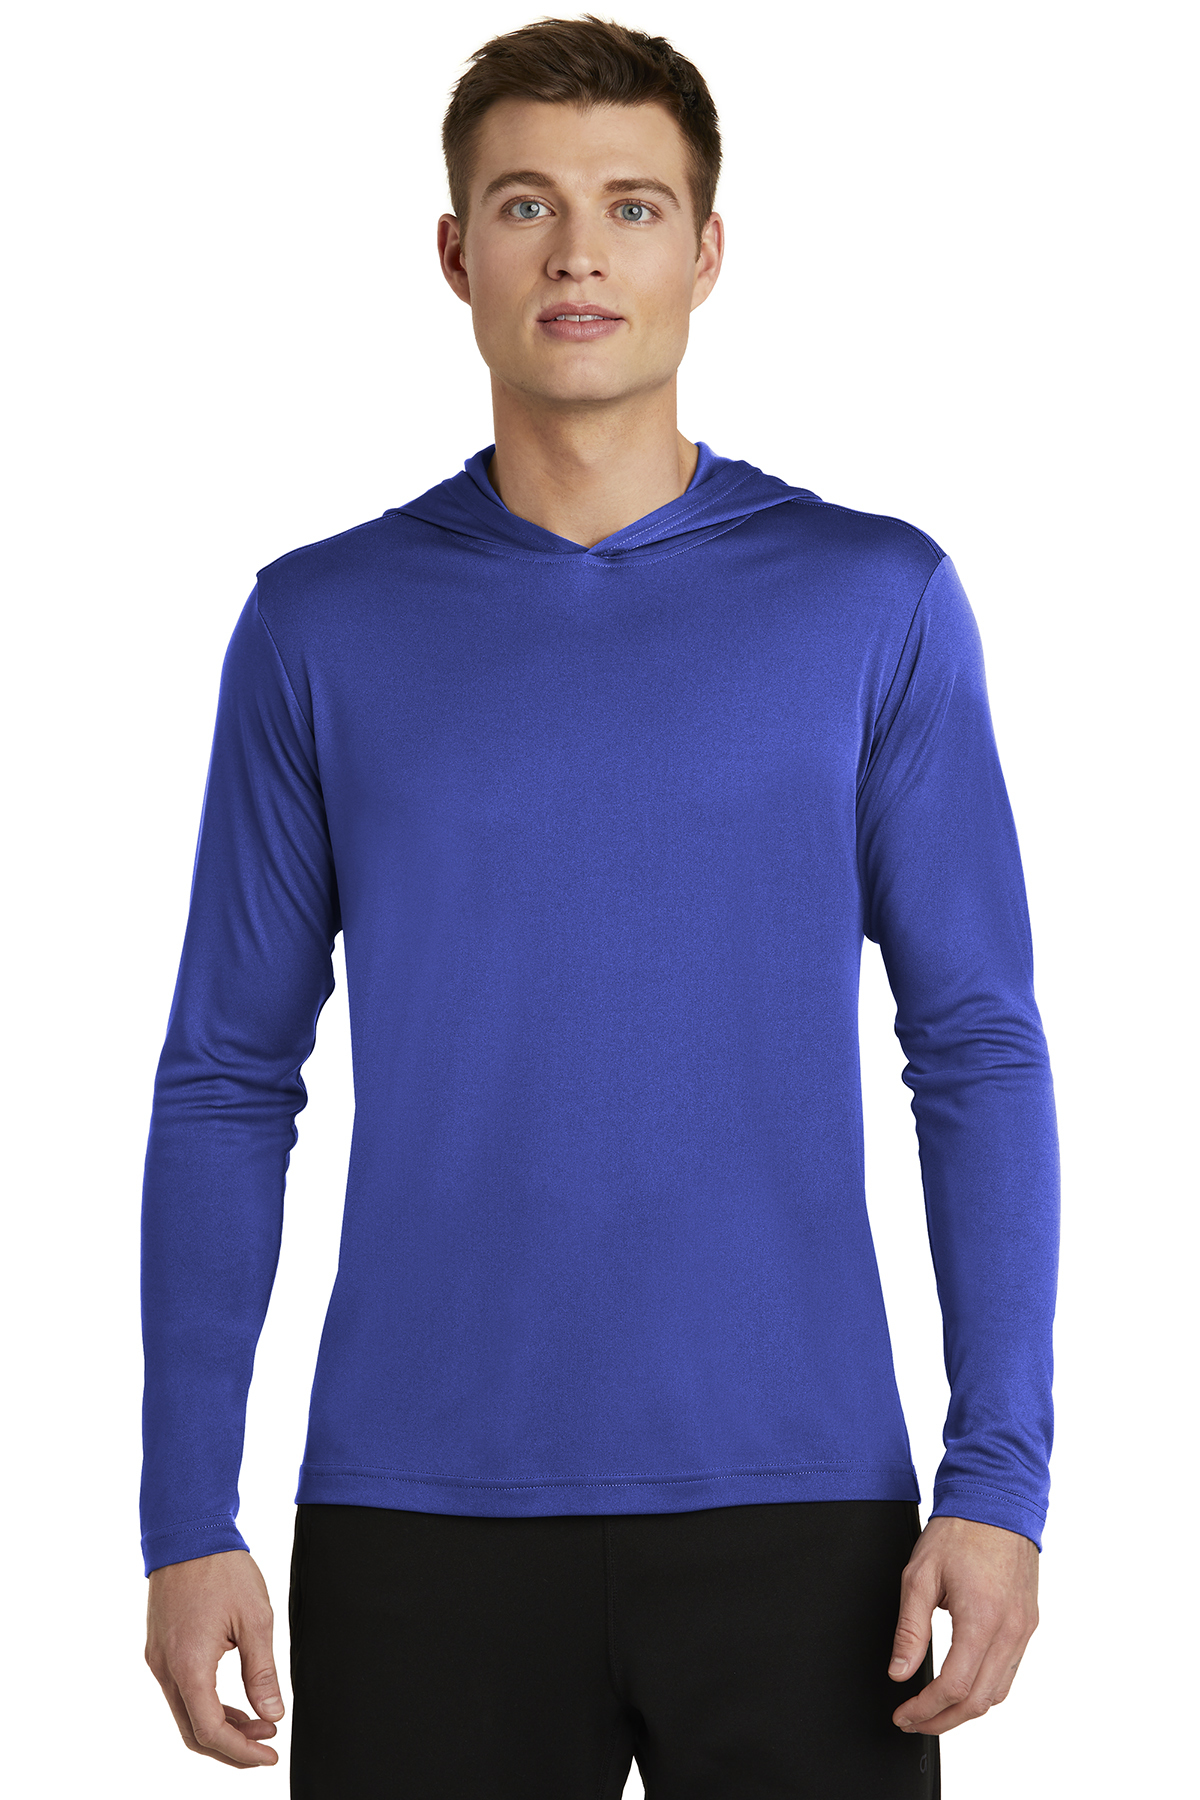 Sport Tek Posicharge Competitor Hooded Pullover T Shirts Sport Tek About 2% of these are children's sports shoes, 0% are children's sandals, and 0% are children's casual shoes. sport tek posicharge competitor hooded pullover t shirts sport tek